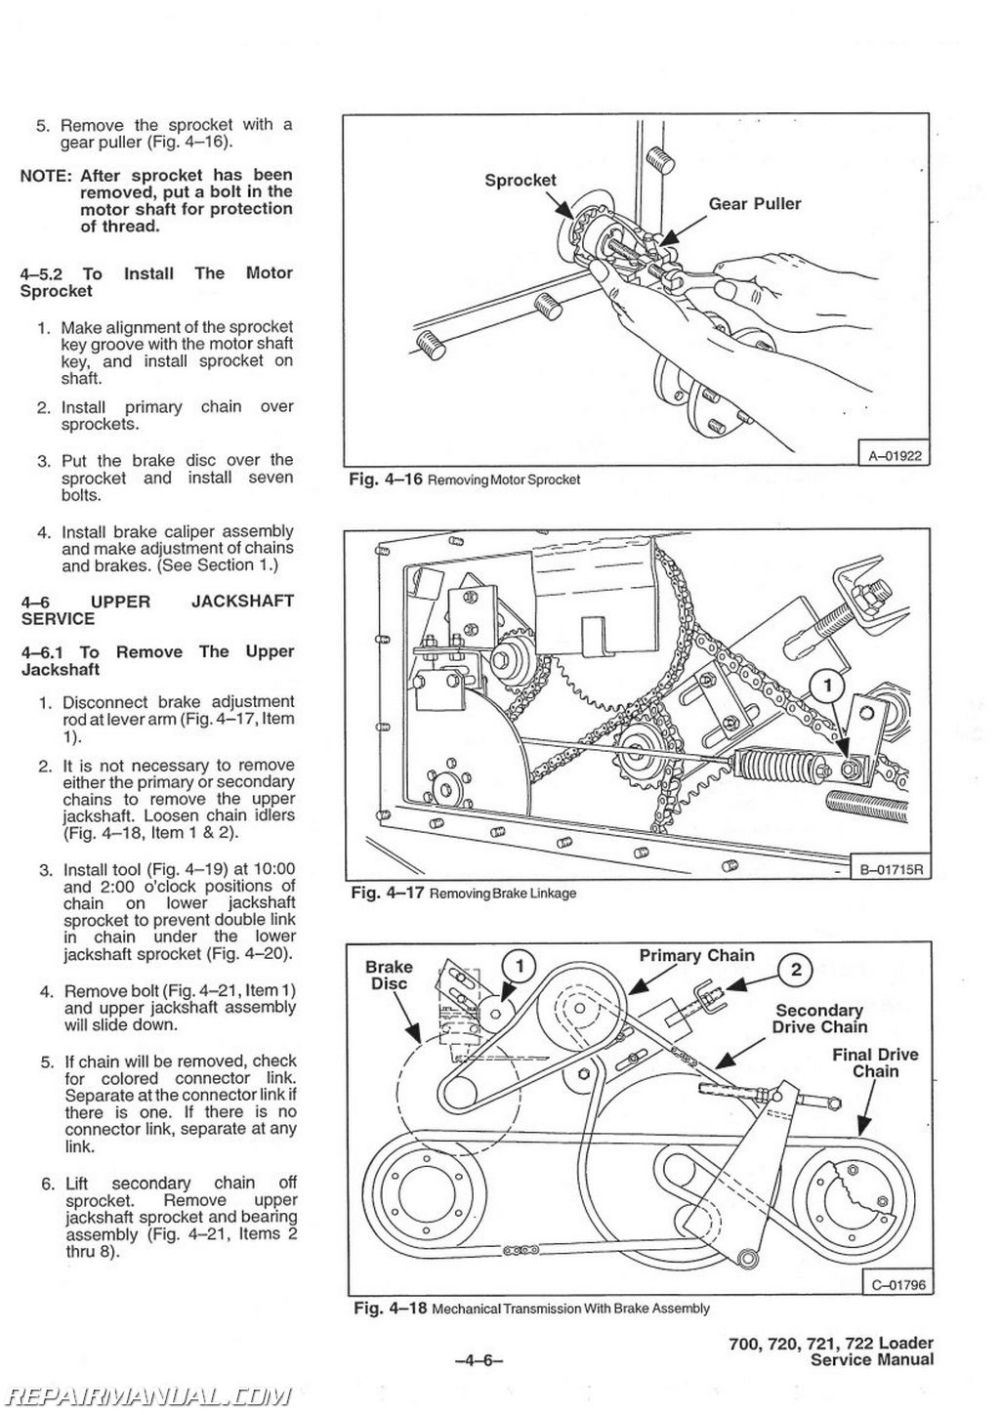 medium resolution of bobcat 700 720 721 722 skid steer service manual rh repairmanual com bobcat model 720 schematic bobcat engine